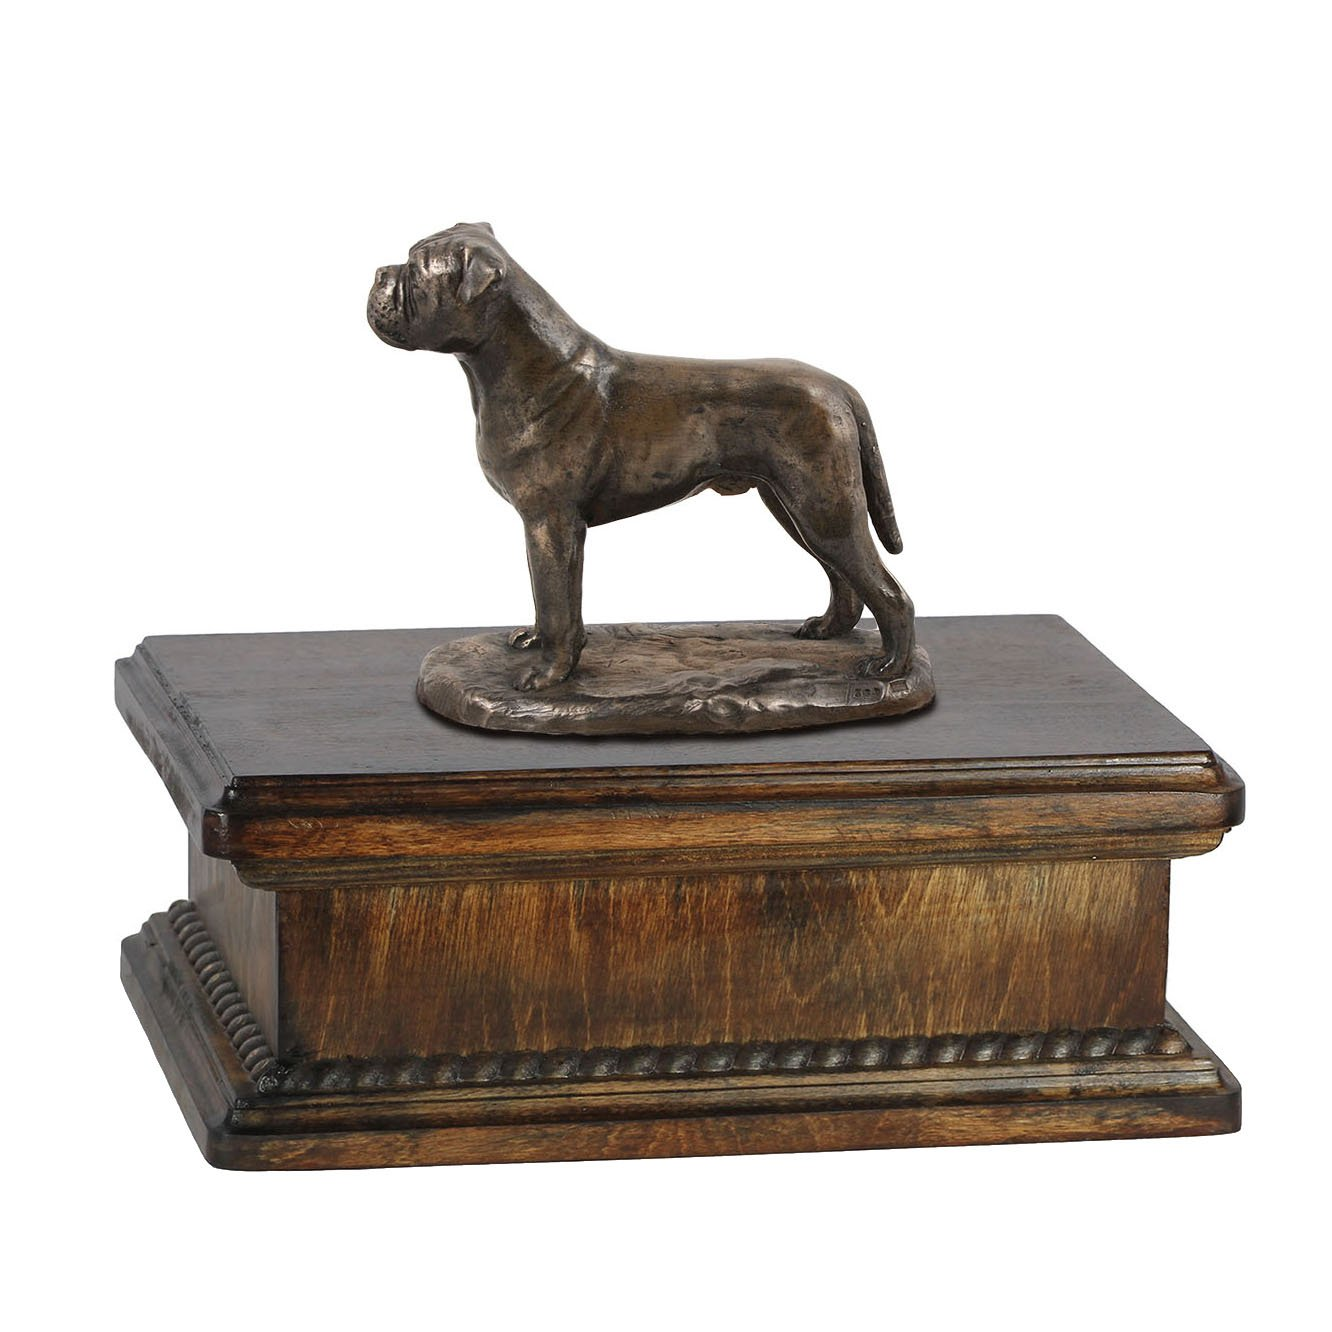 Bullmastiff, memorial, urn for dog's ashes, with dog statue, exclusive, ArtDog